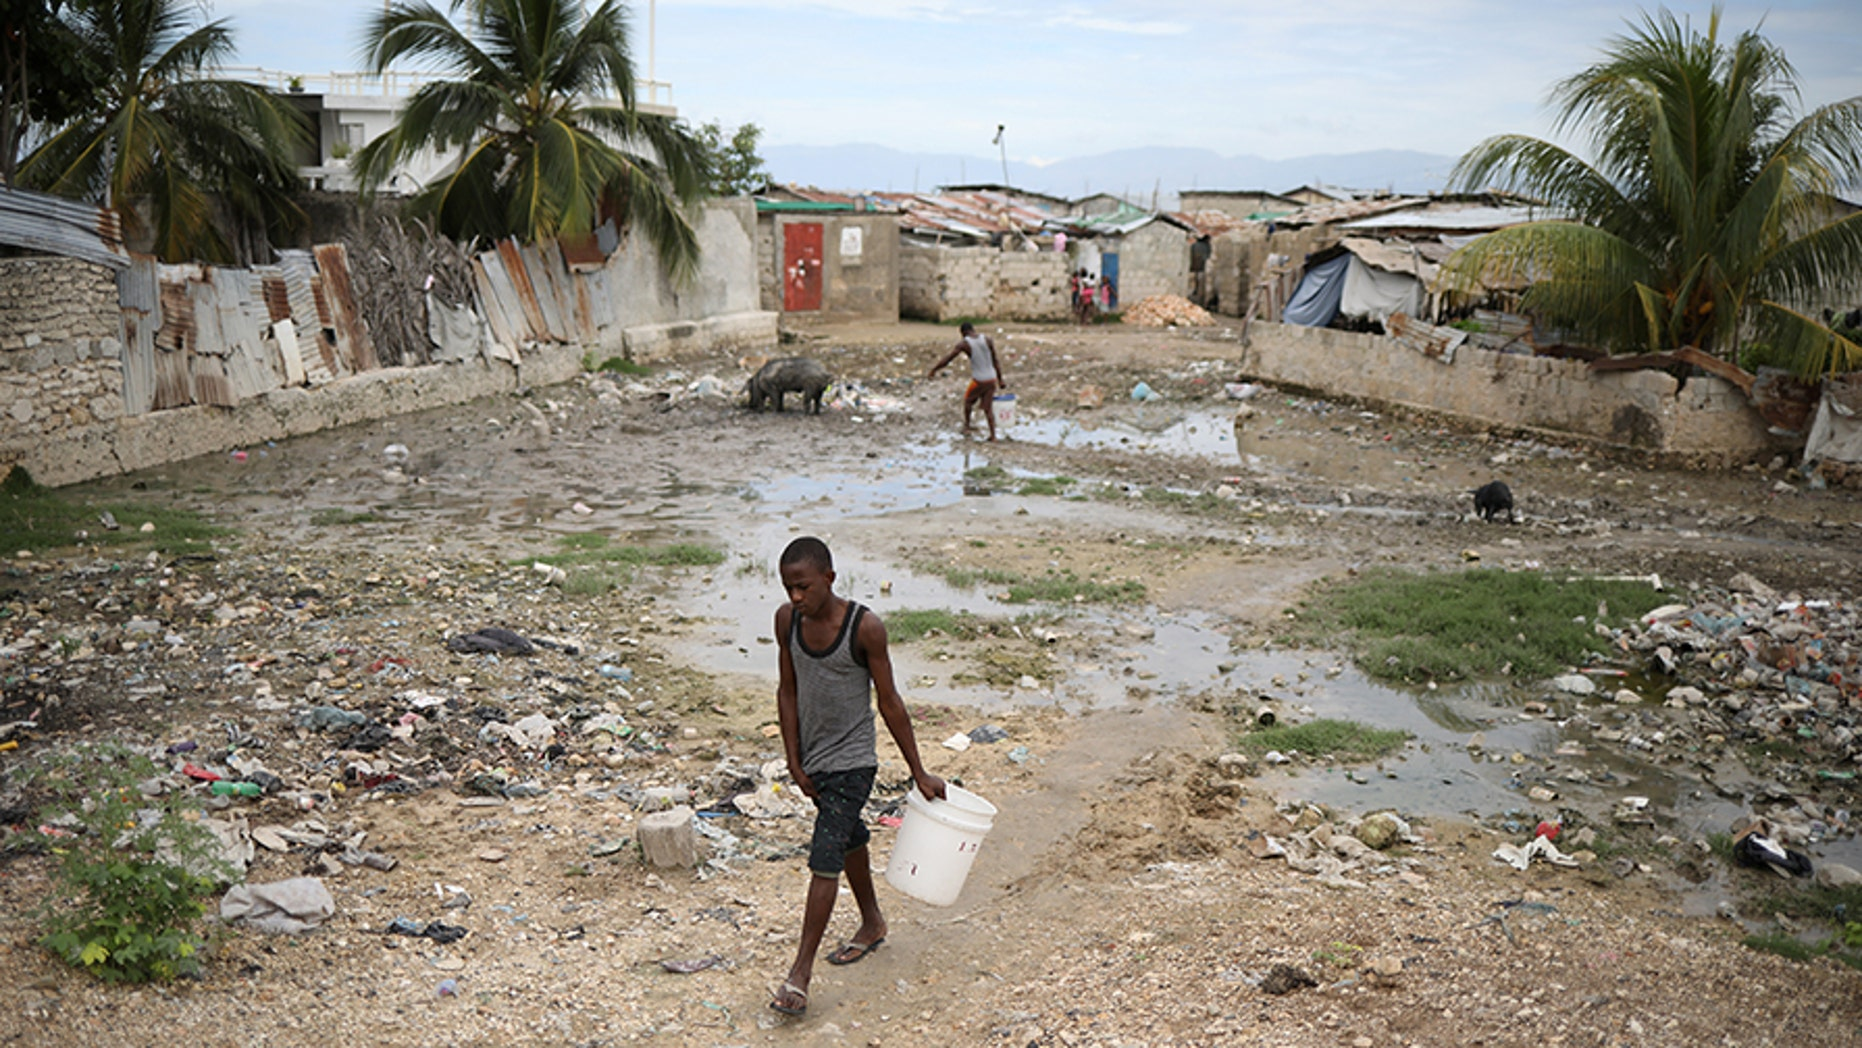 The Trump administration announced on Monday an end to a temporary residency program enacted in 2010 for Haitians after a major earthquake hit the island nation.